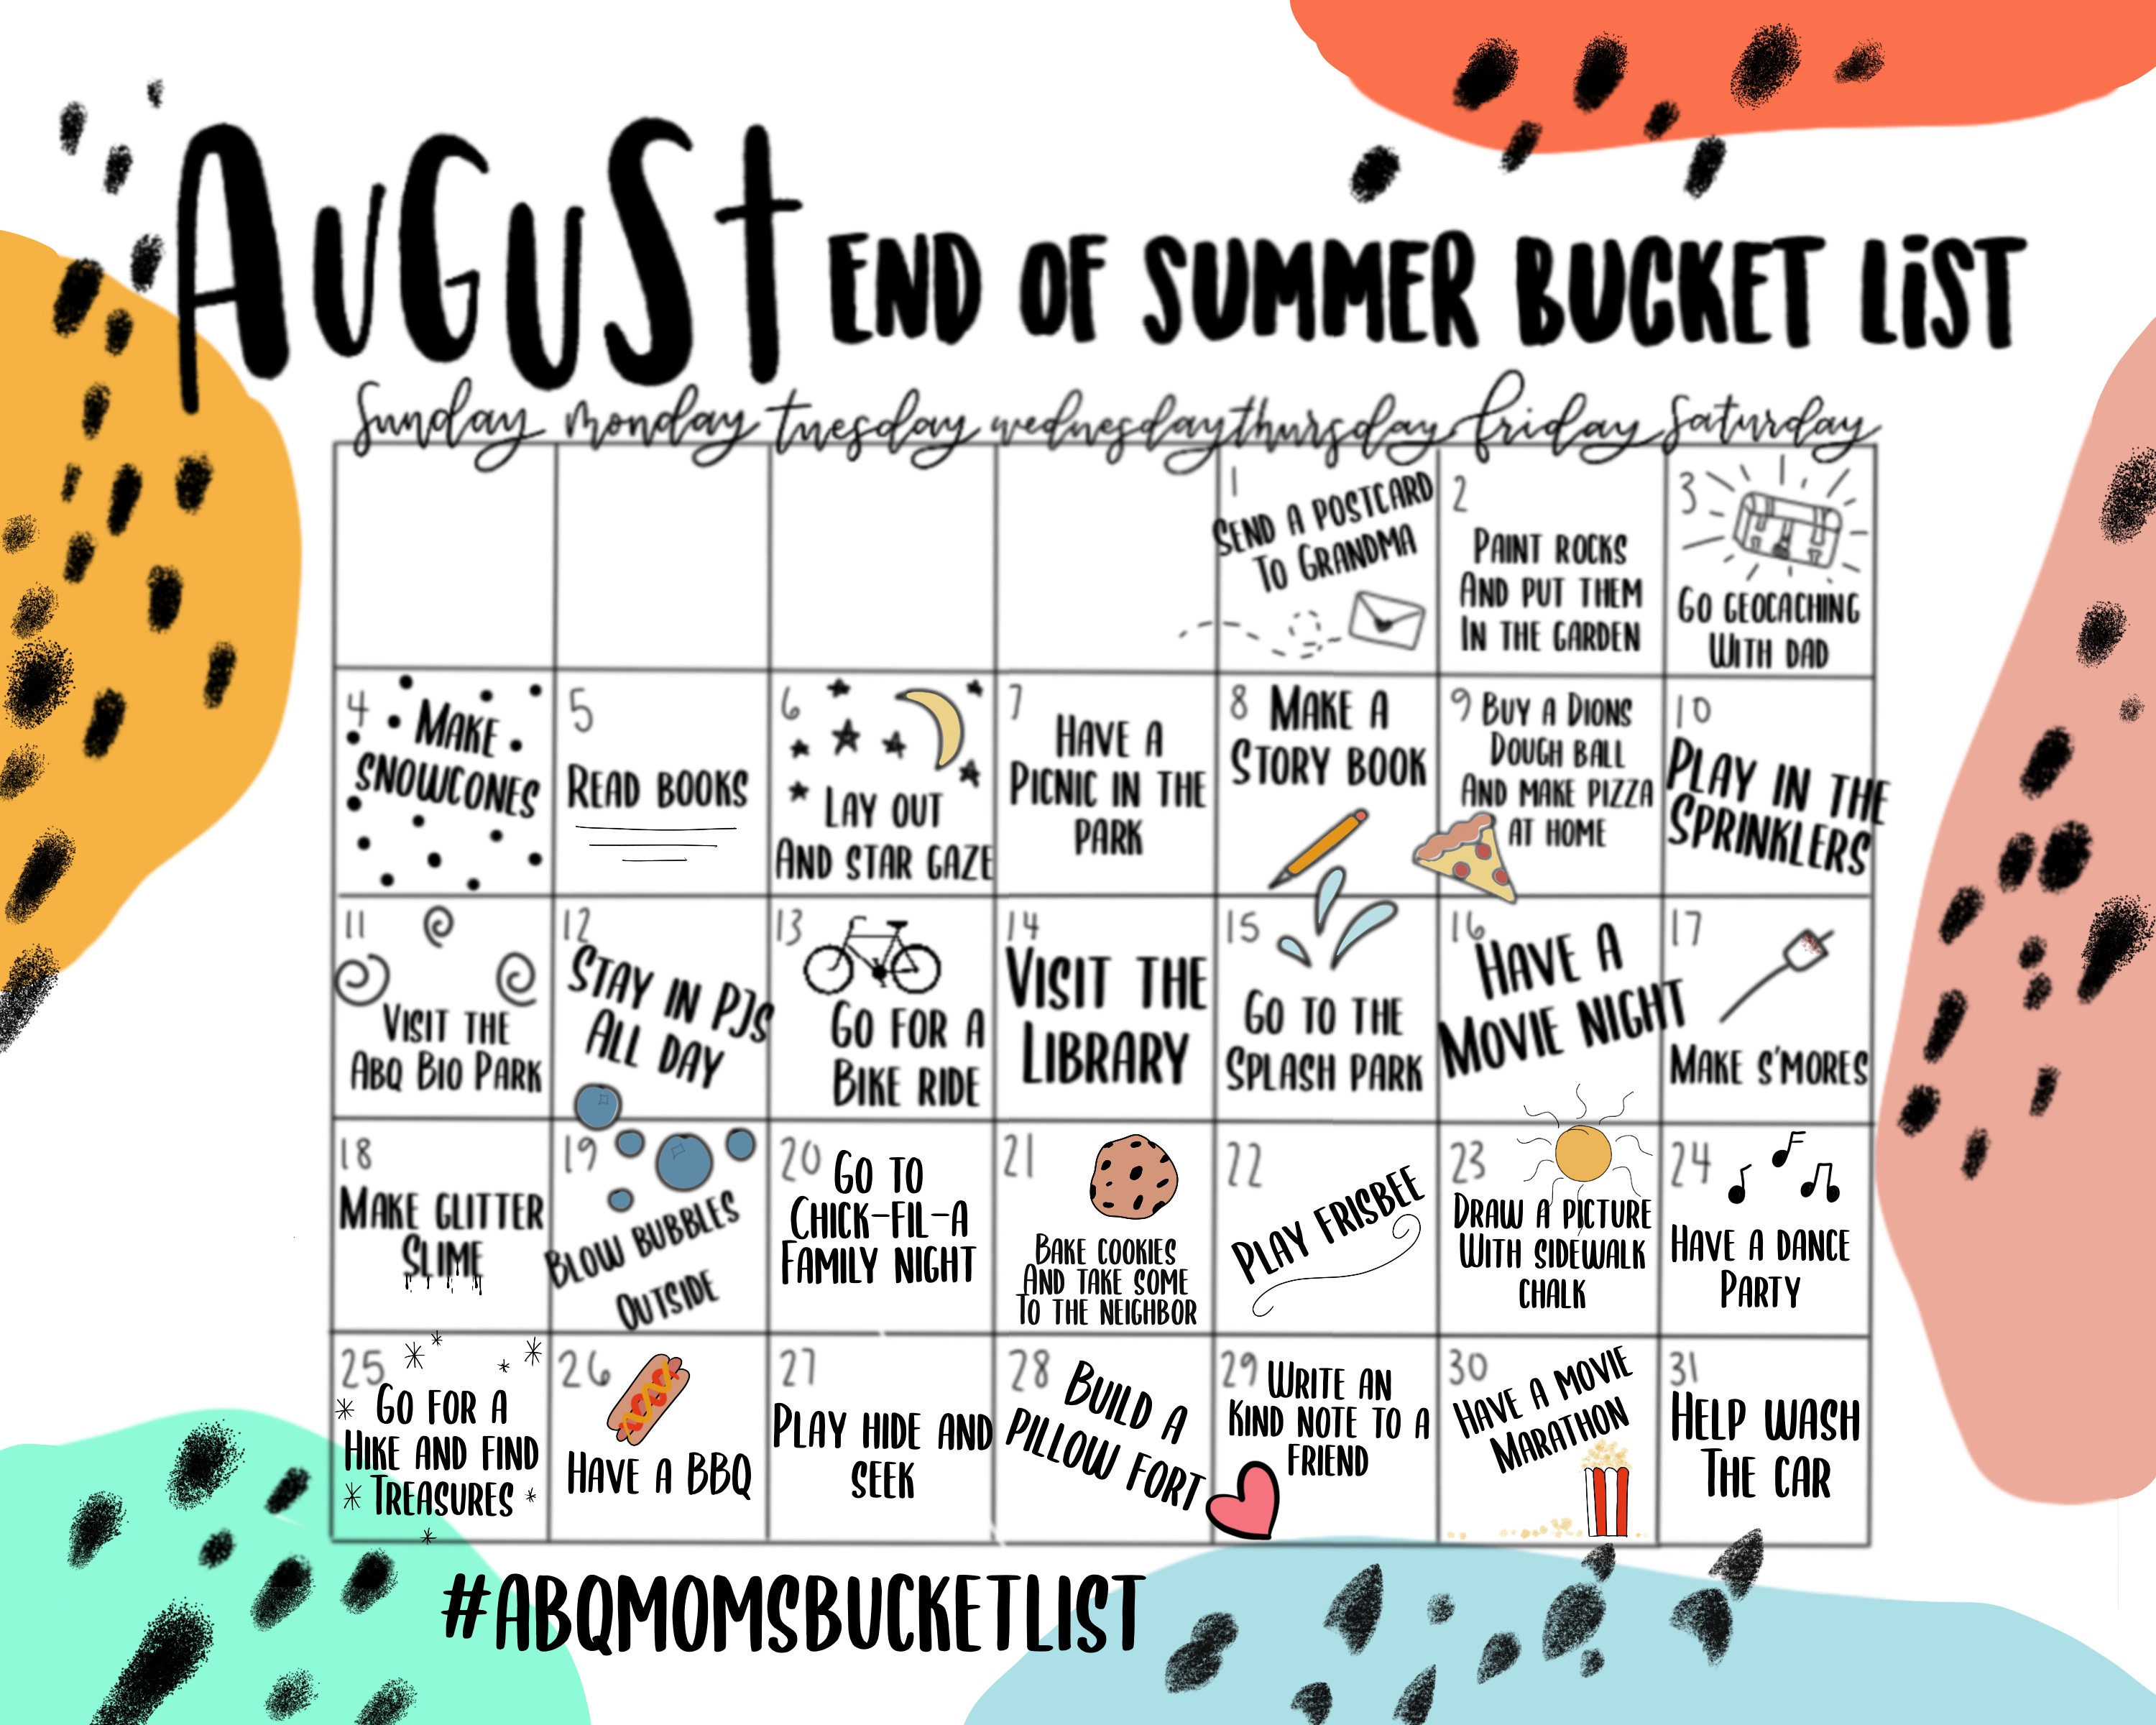 photo regarding Bucket List Printable identify Conclude-of-Summer season Bucket Listing Printable